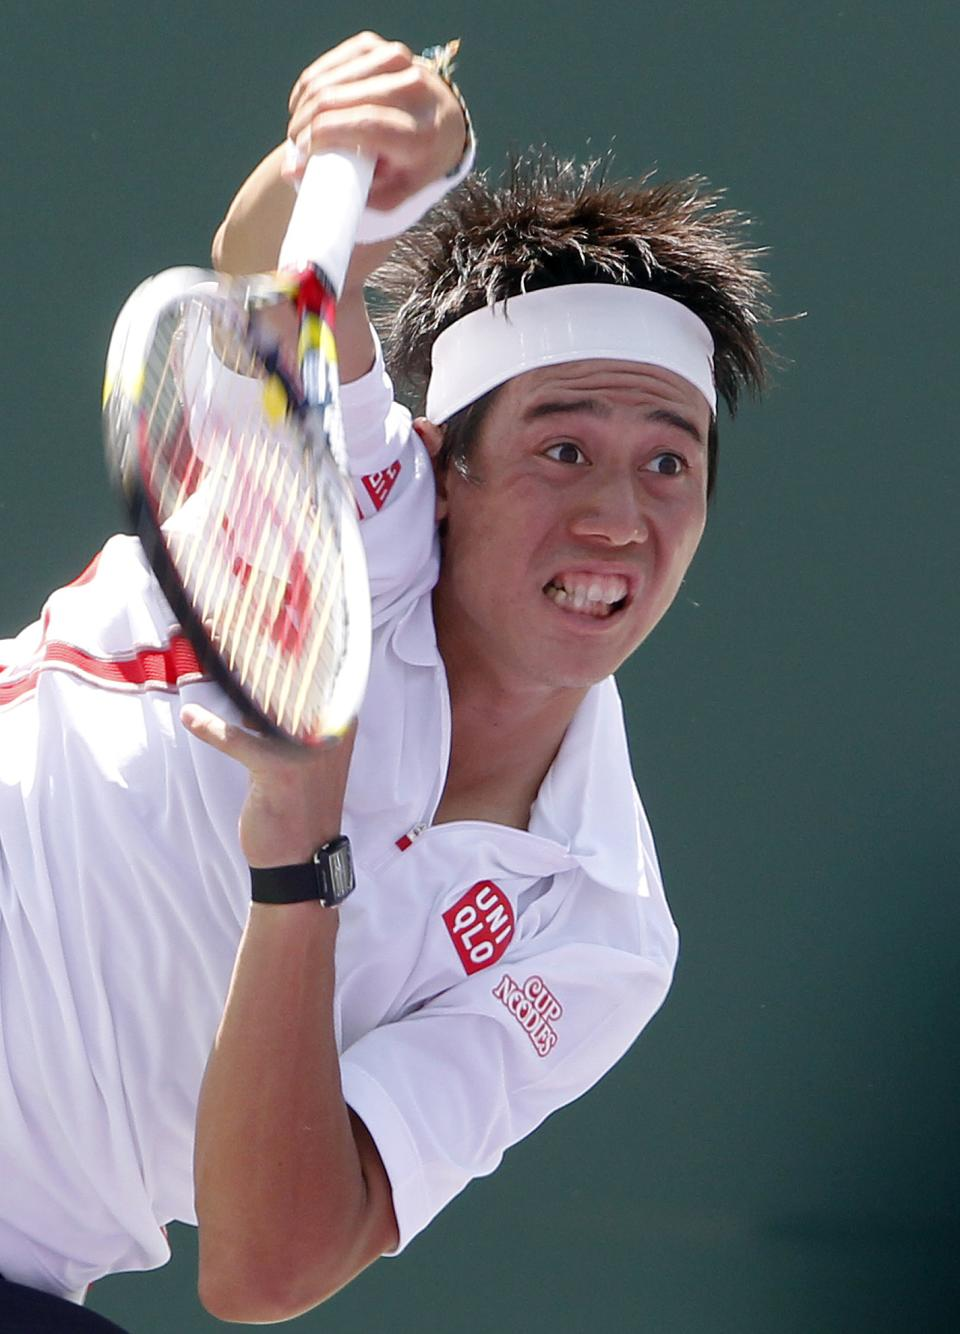 Kei Nishikori, of Japan, serves to Rafael Nadal, of Spain, during the Sony Ericsson Open tennis tournament, Tuesday, March 27, 2012, in Key Biscayne, Fla. (AP Photo/Wilfredo Lee)